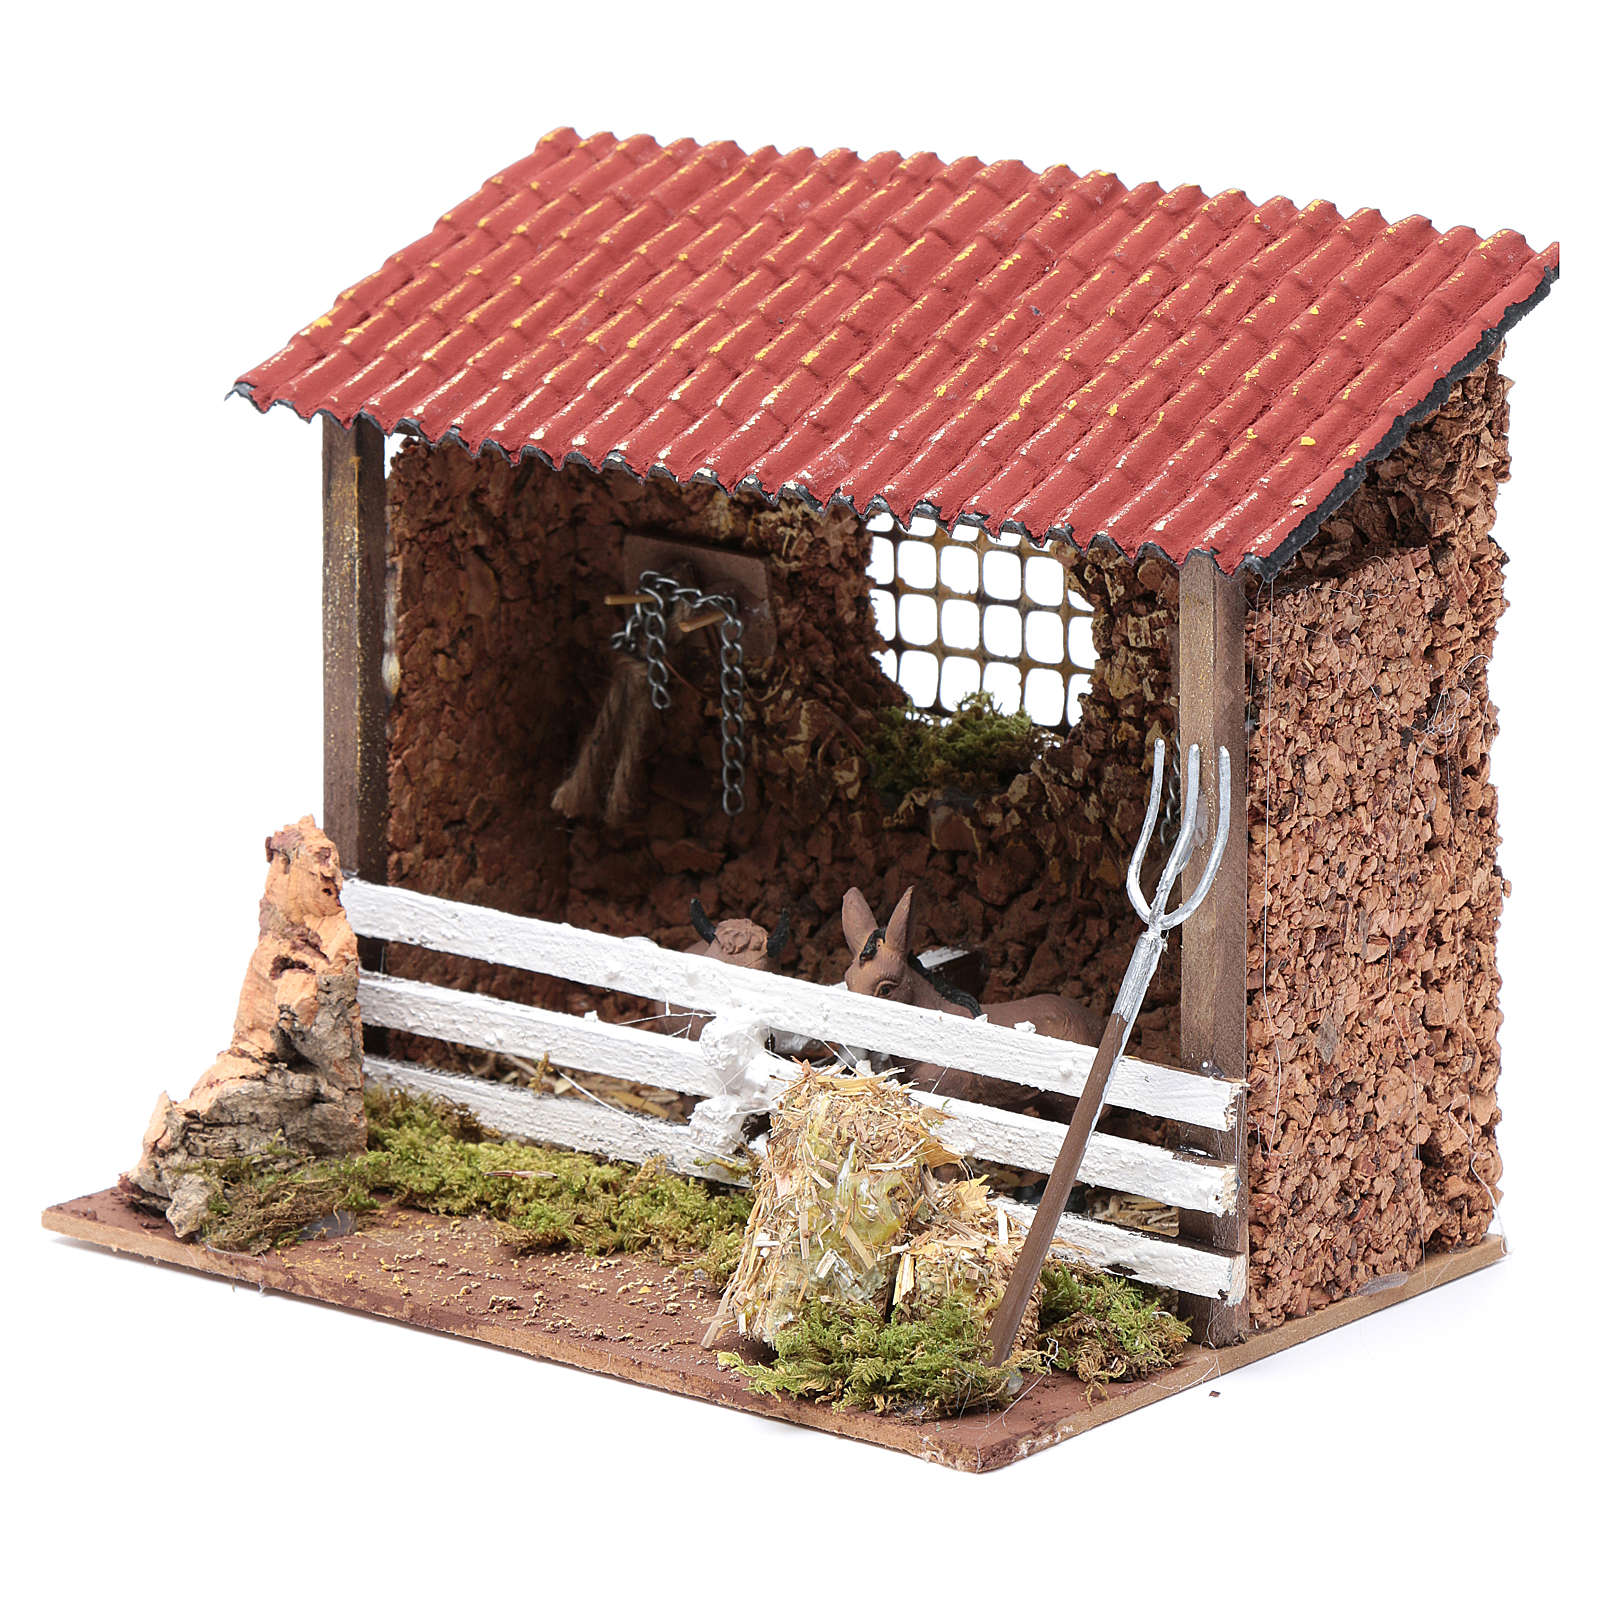 Barn for donkey and ox crib 3